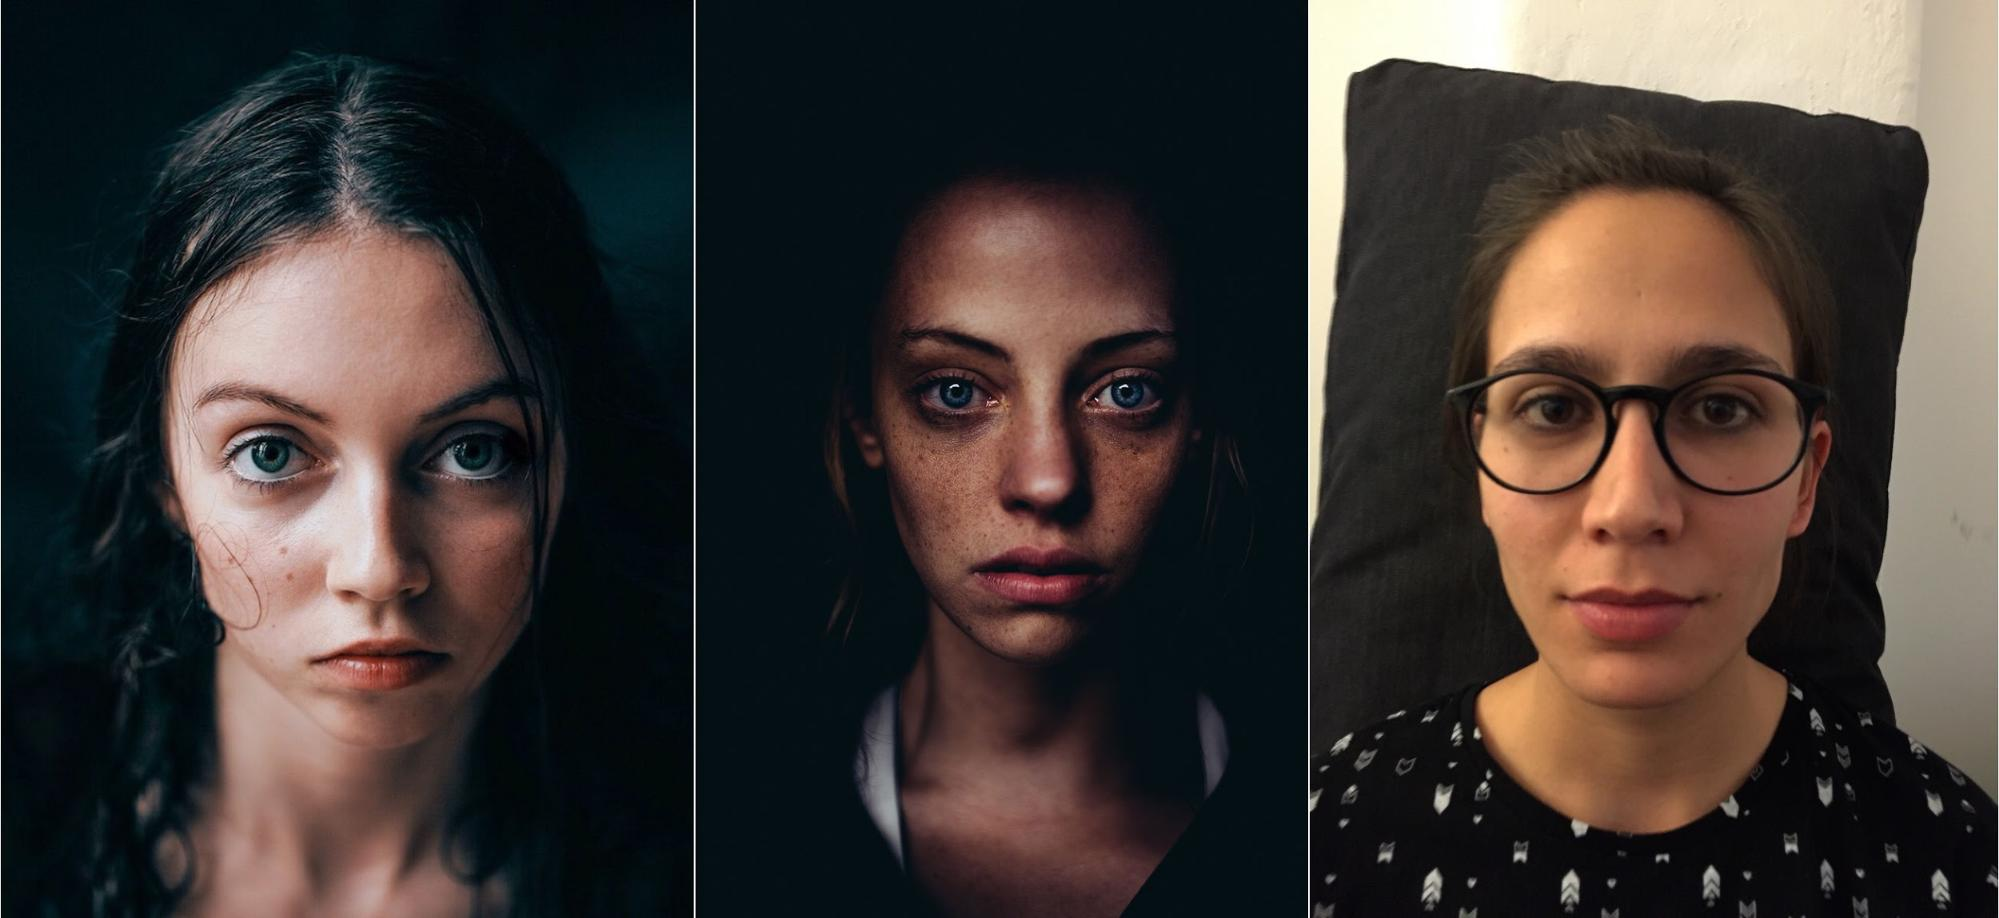 Photographs by EyeEm users @duzochukwu, @aufzehengehen, and @appughar (left to right).